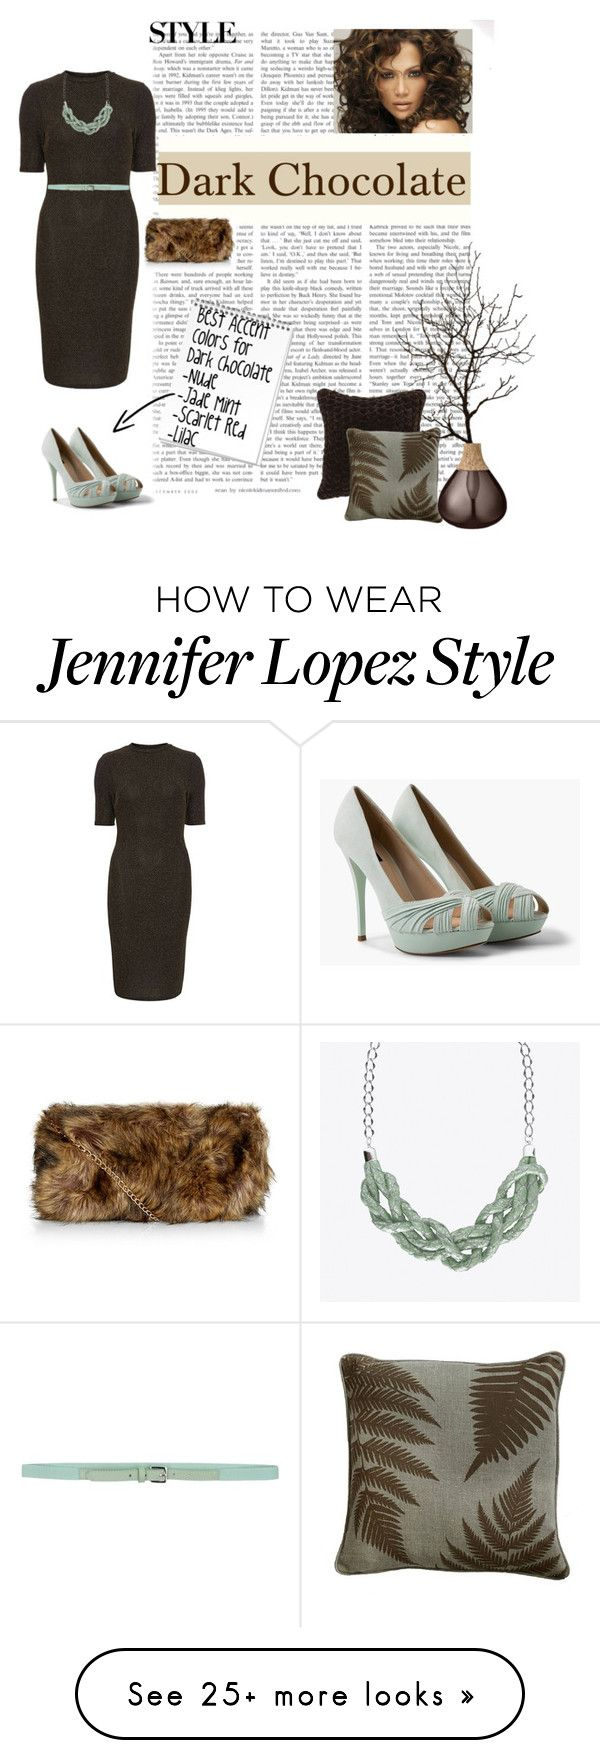 """""""Winter's Haute Hues - #5 Dark Chocolate"""" by charlie-sparrow on Polyvore featuring York Wallcoverings, Jennifer Lopez, Dorothy Perkins, MANGO, malo, Nico, Bloomingville and Dotti Jewellery"""